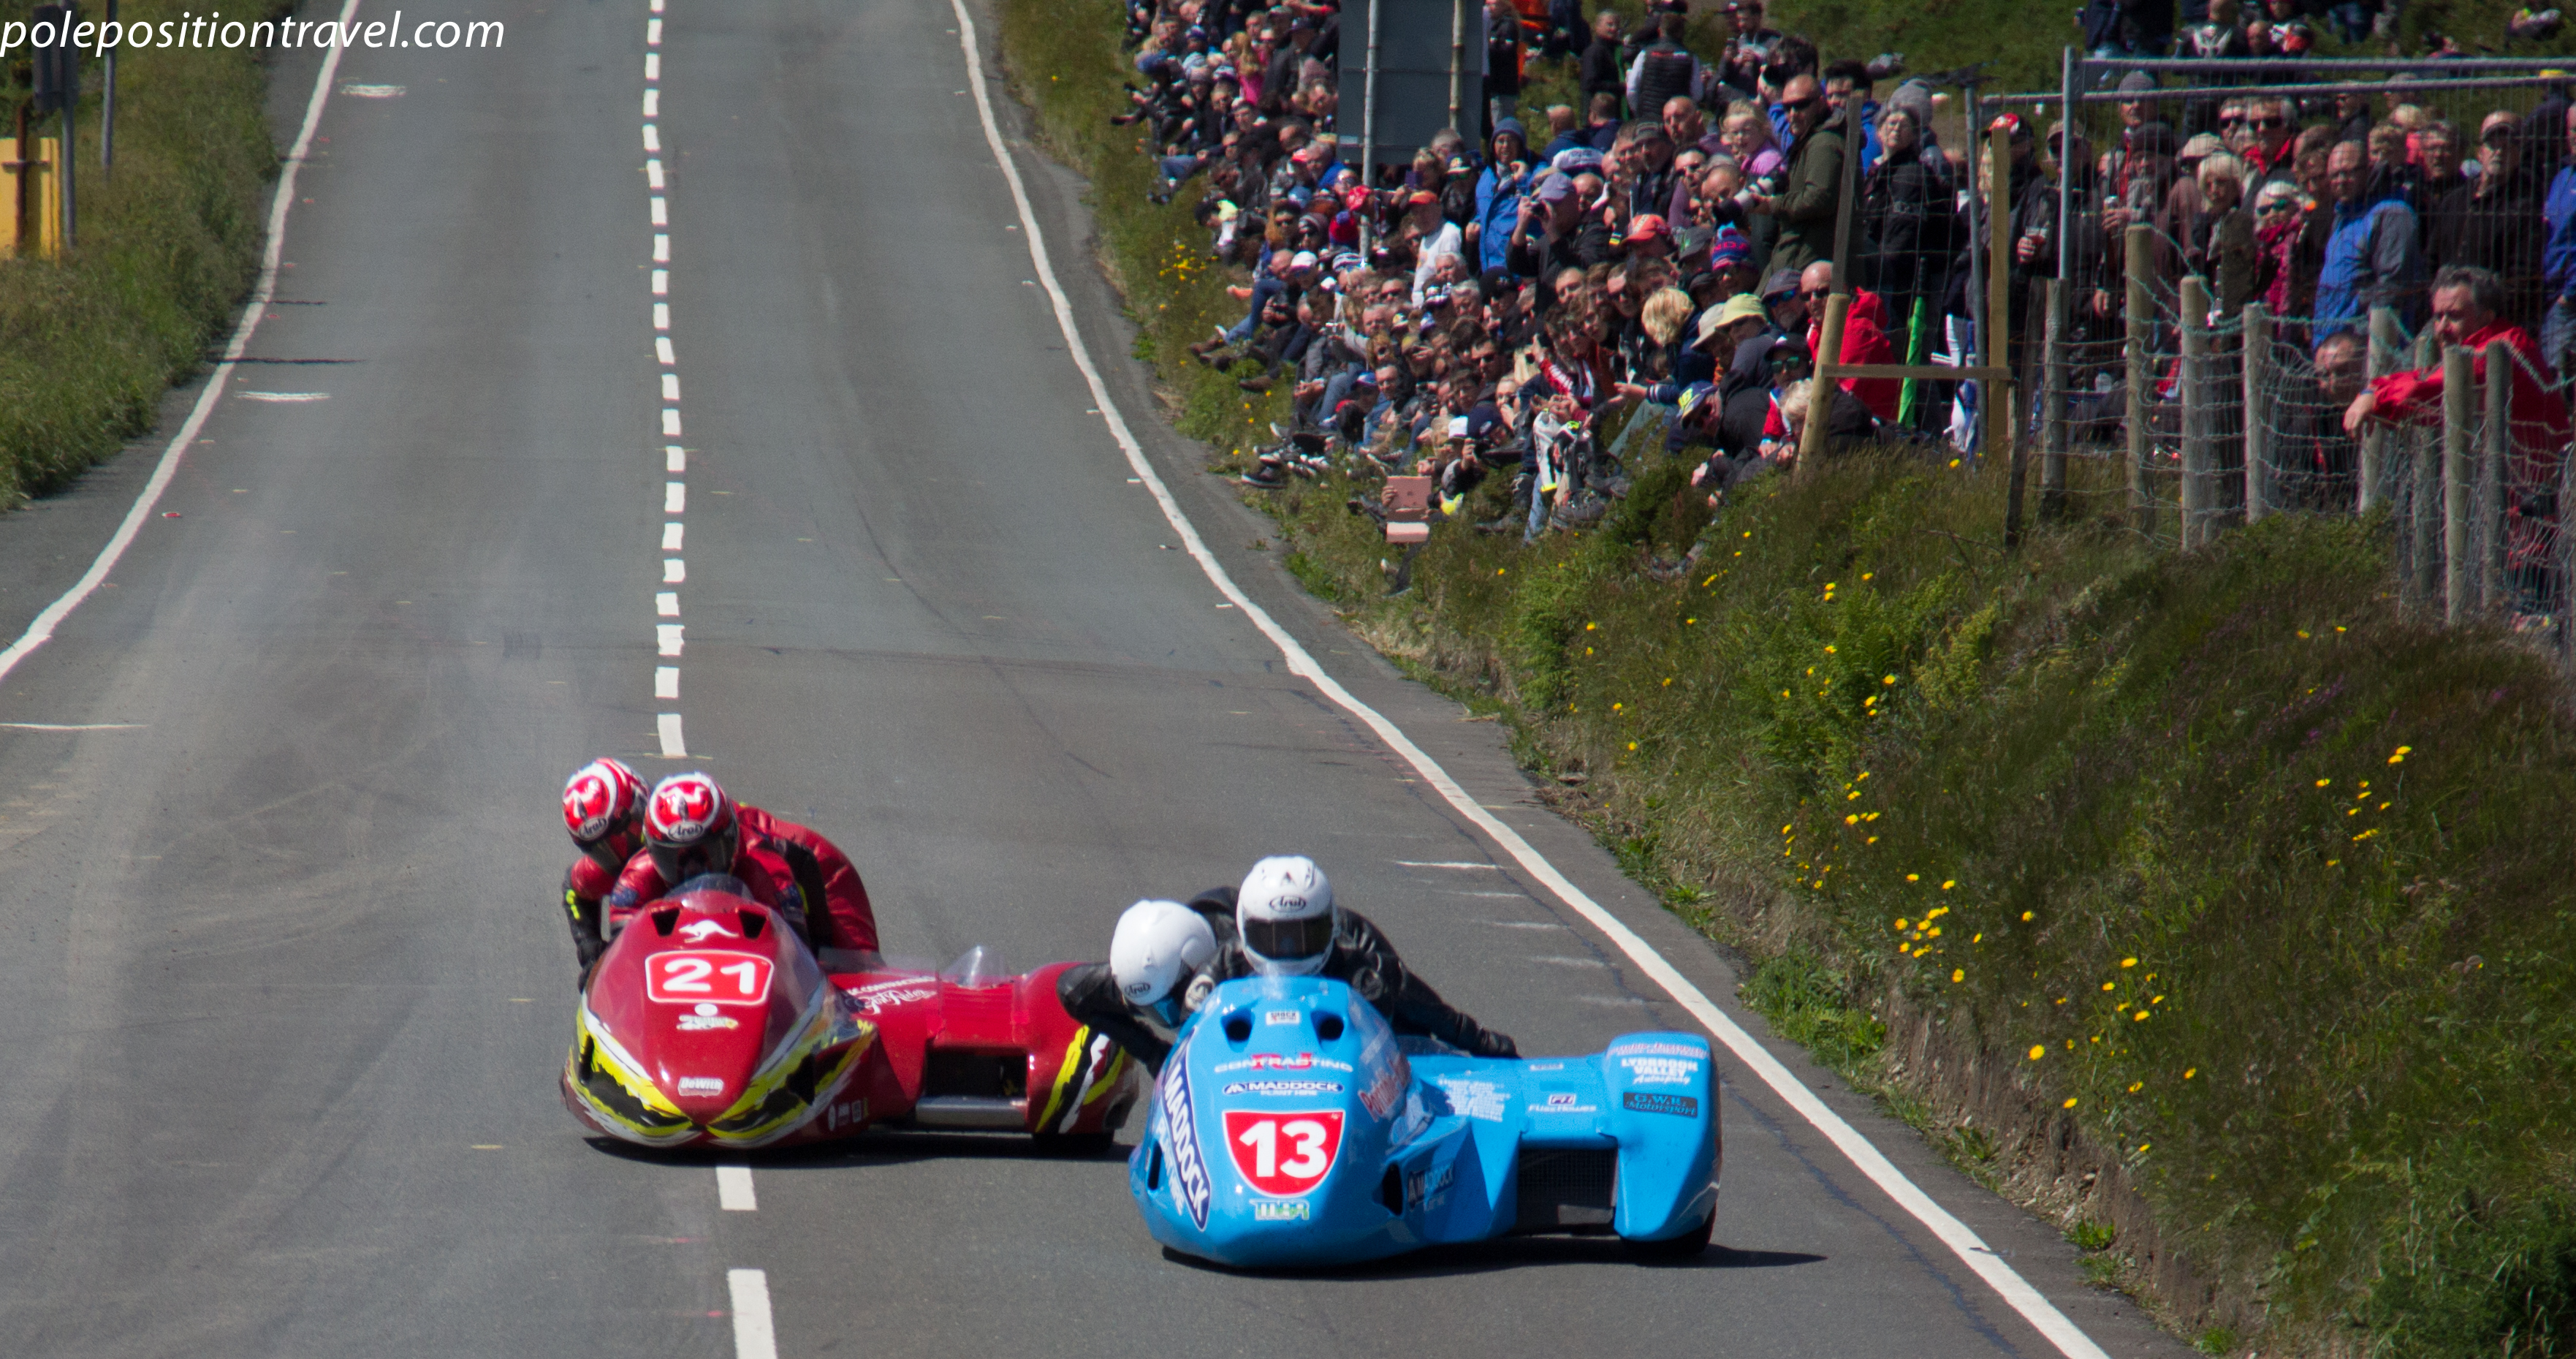 IOM TT 2018 launched!